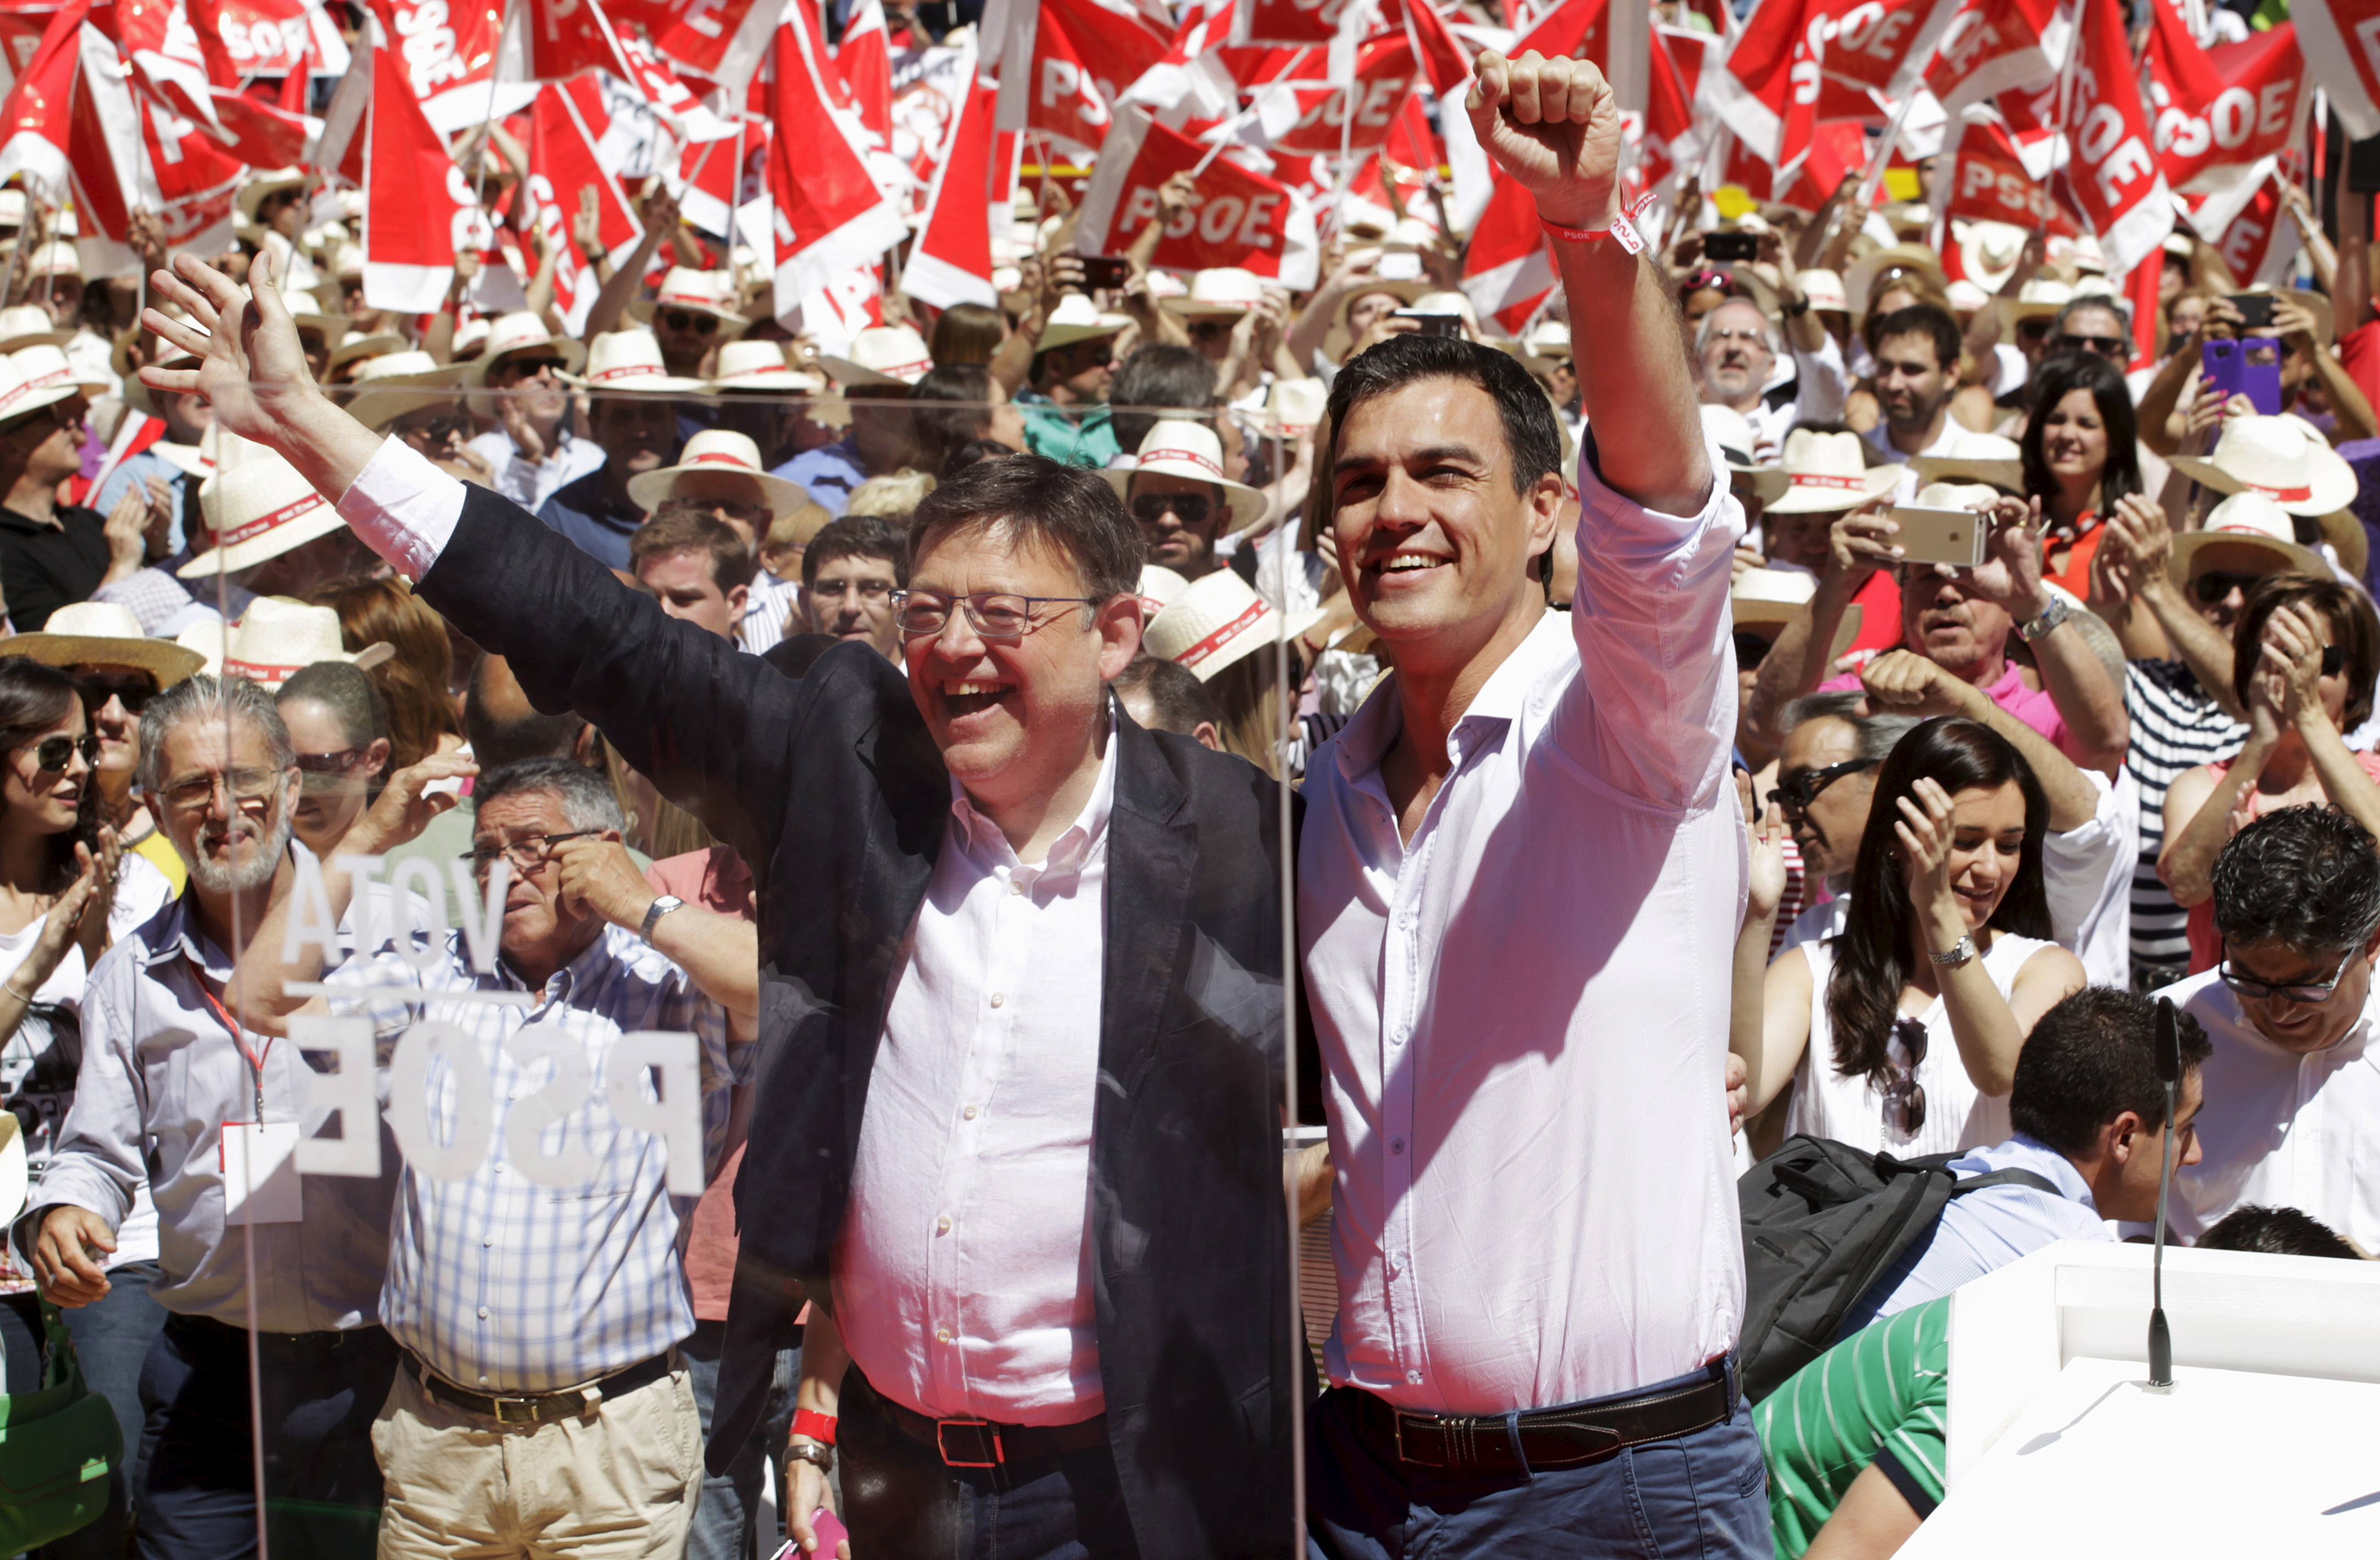 Socialist Party (PSOE) Secretary General Pedro Sanchez (R) greets next to regional presidential candidate Ximo Puig as he arrives at an electoral meeting at the bull ring in Valencia, Spain, May 16, 2015. REUTERS/Heino Kalis - RTX1D7SD